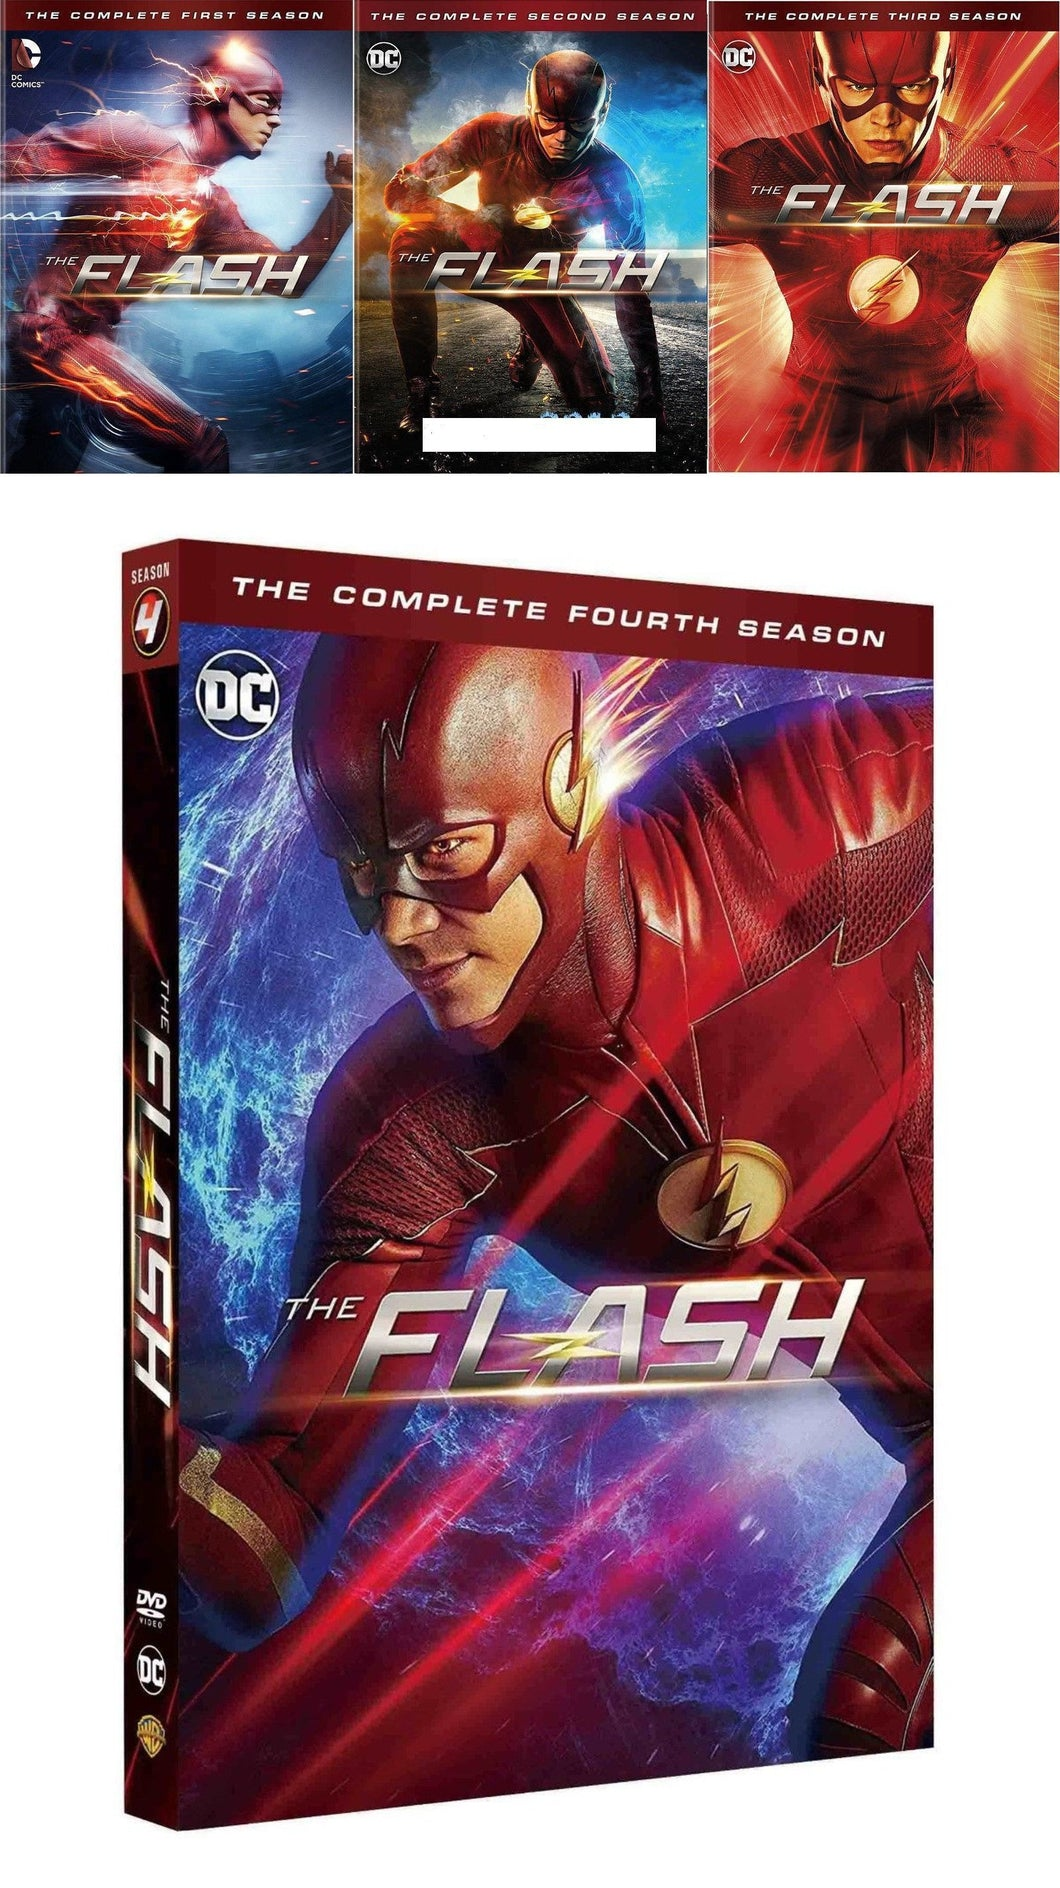 The Flash: Complete TV Series Seasons 1-4 dvd